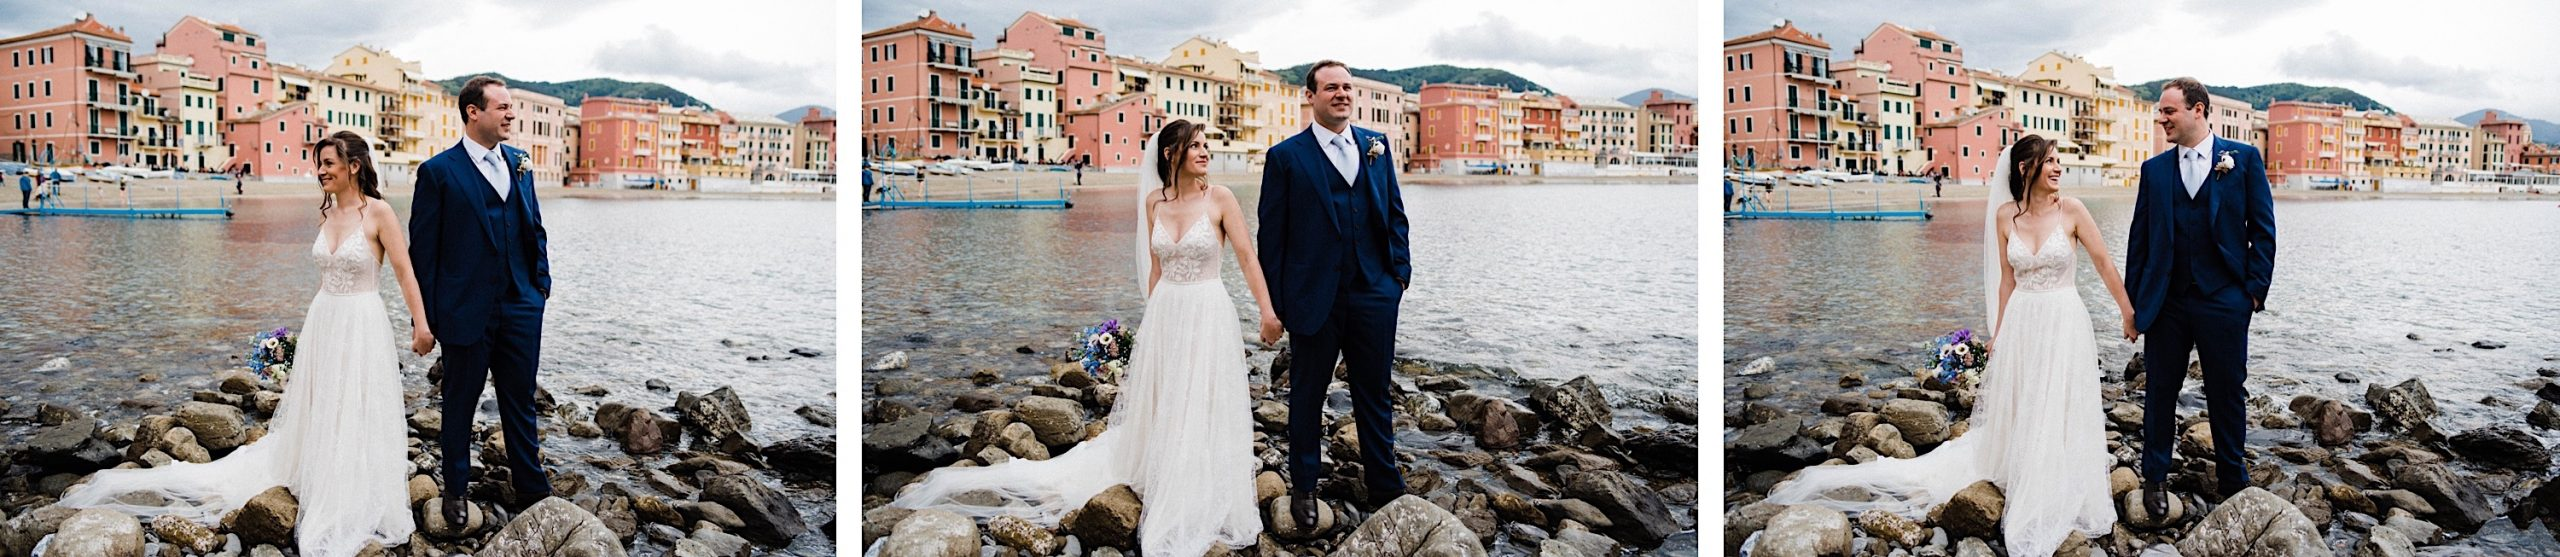 Three photos of a bride & groom moving towards each other at their Italian Riviera Wedding.